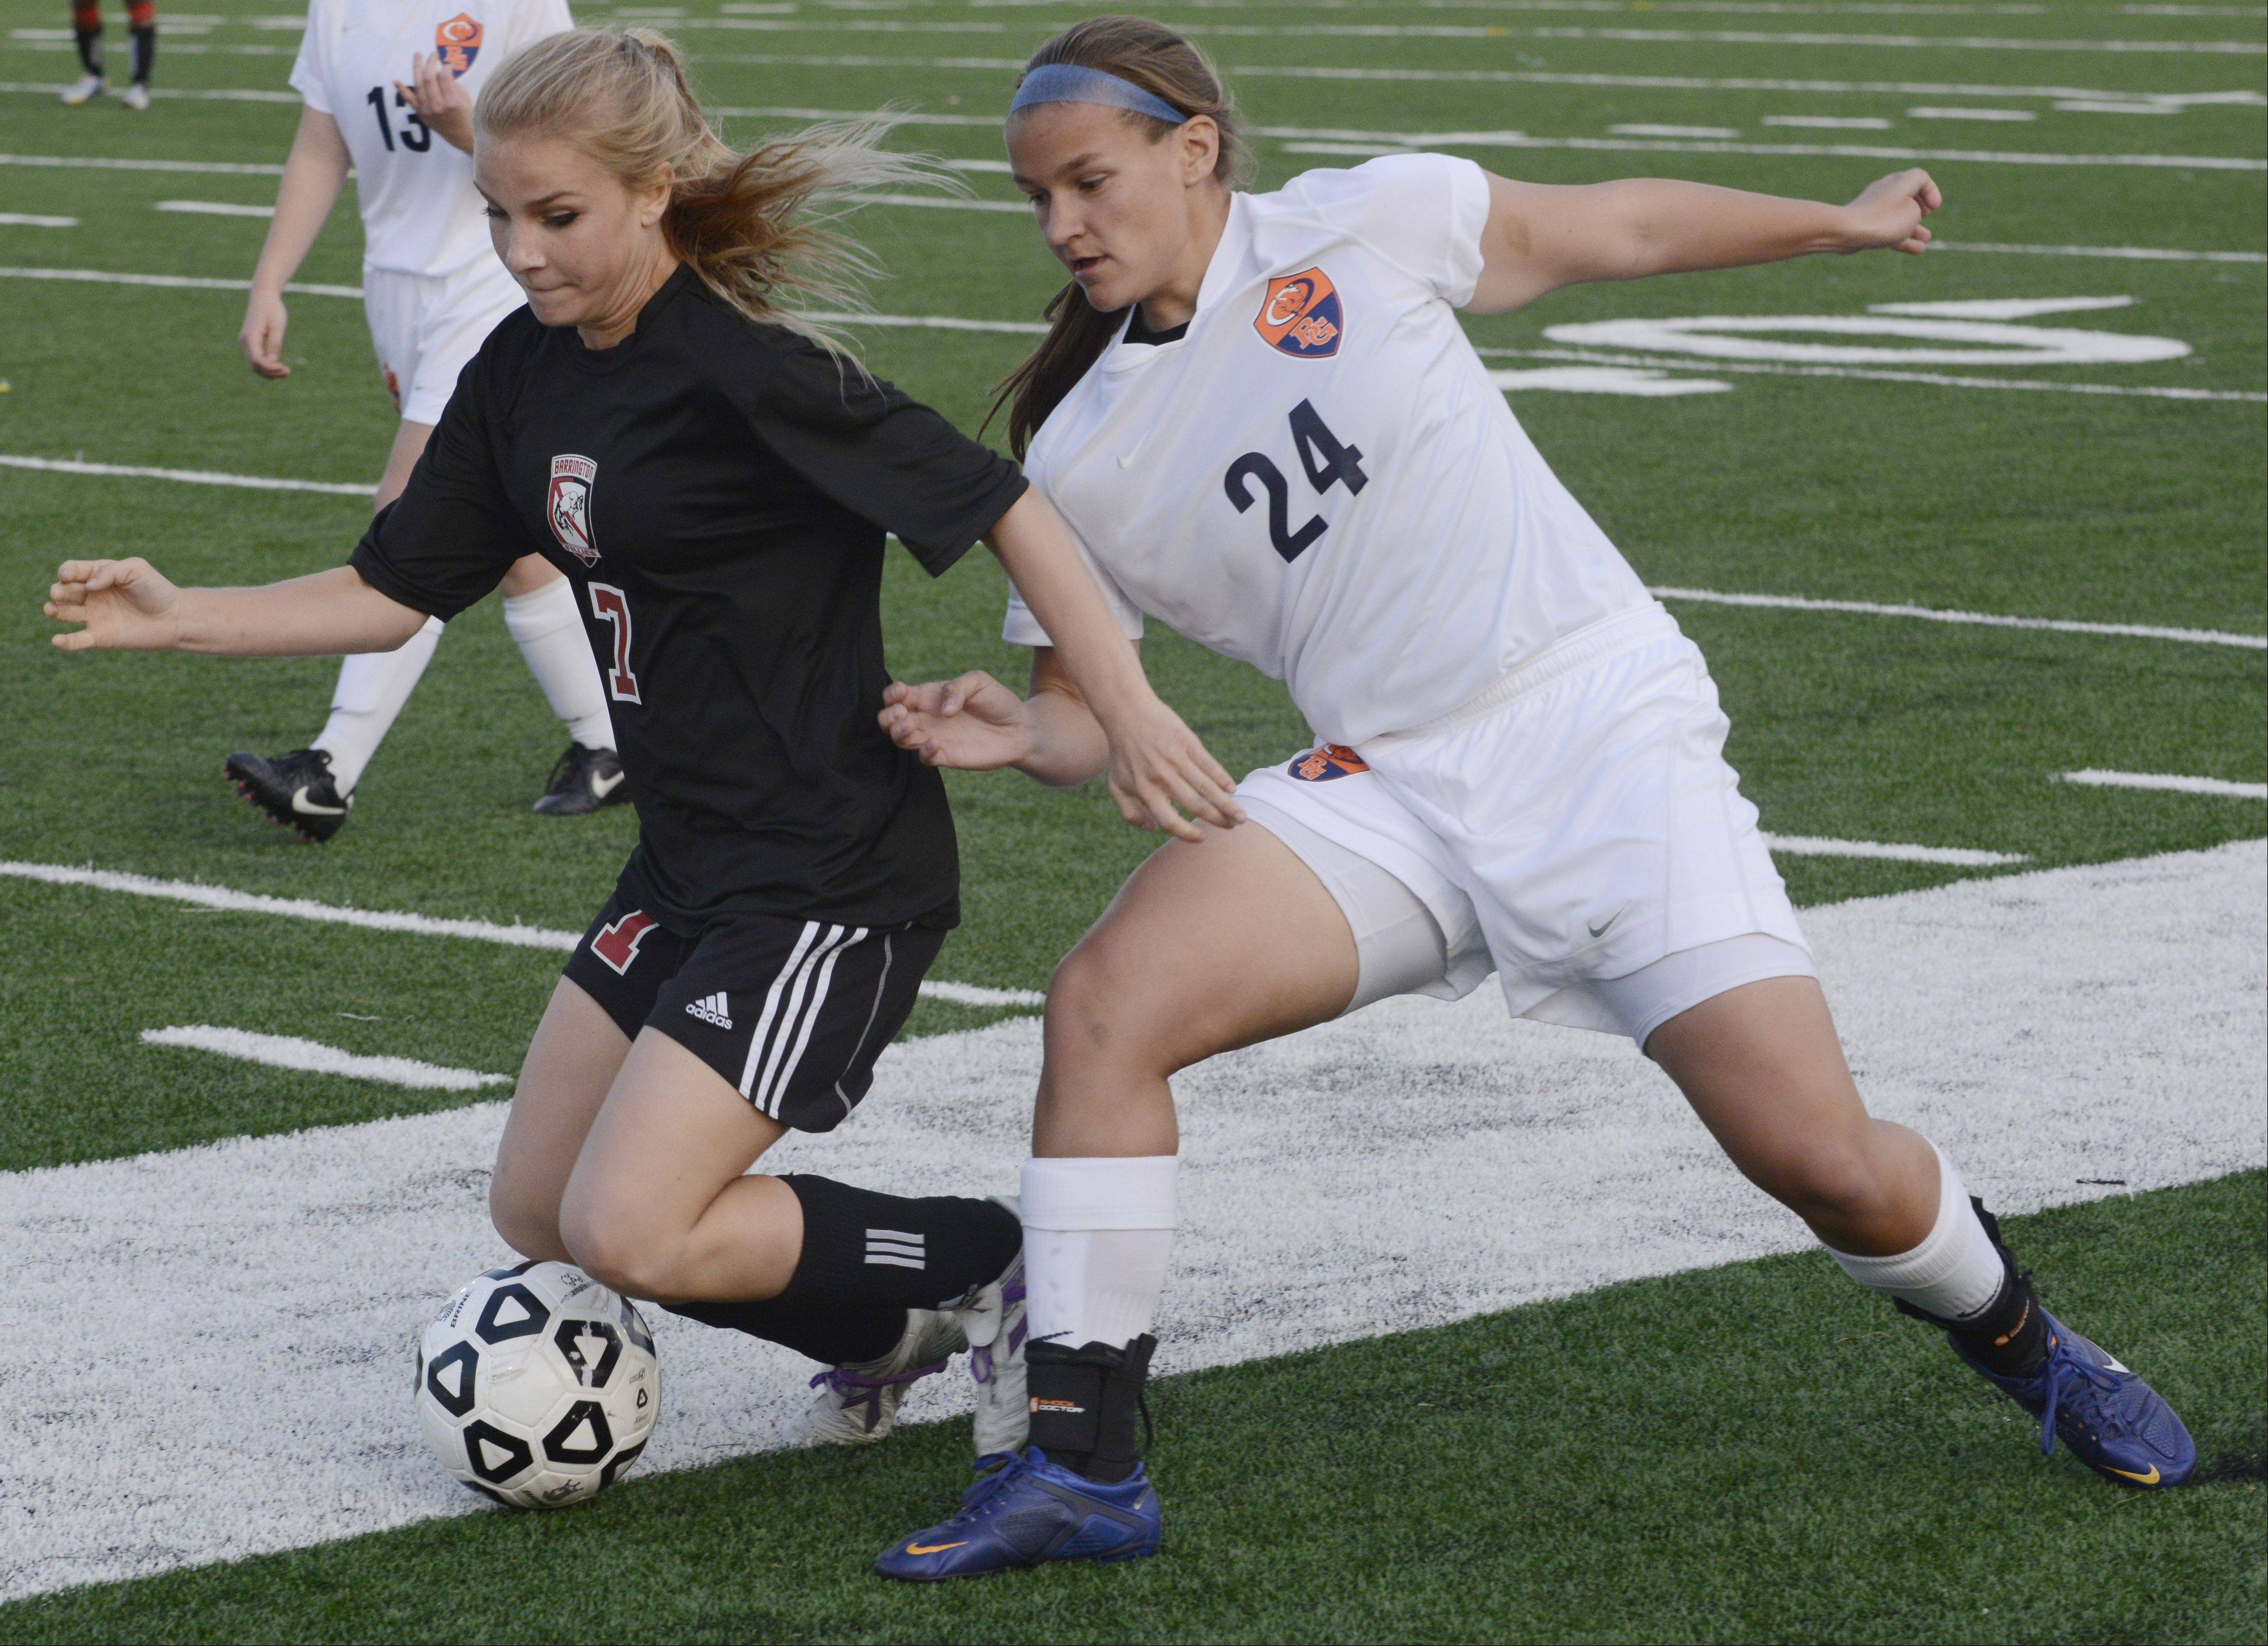 Barrington's Alex Avers, left, and Buffalo Grove's Sara Busse make contact while trying to get to the ball during Wednesday's Mid-Suburban League championship game at Buffalo Grove.